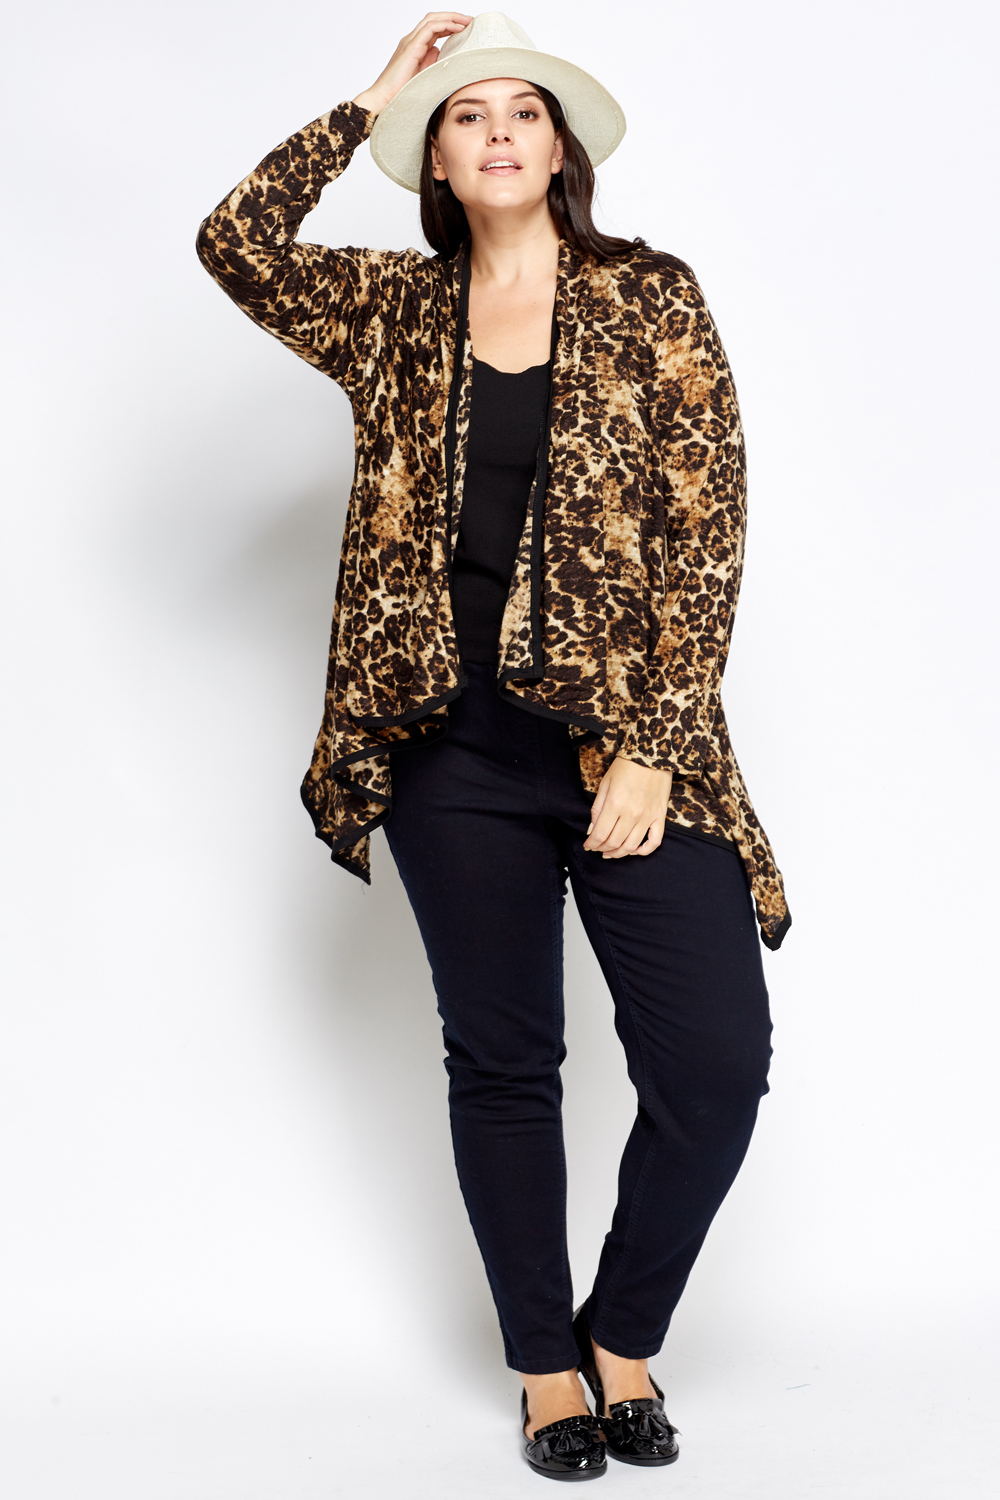 Leopard Print Asymmetric Open Front Cardigan - Just £5